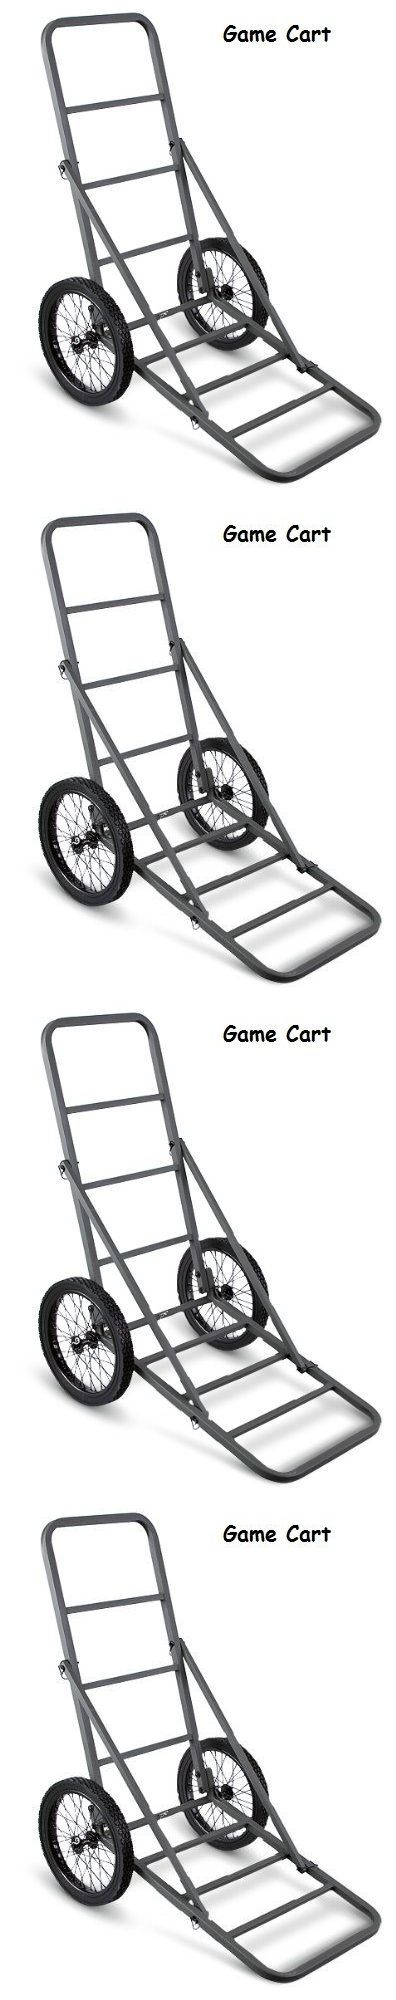 Game Carts Gambrels and Hoists 177888: Deer Cart Game Hauler Carts Hunting Supplies Cross Bow Tree Stands Blinds New BUY IT NOW ONLY: $74.89